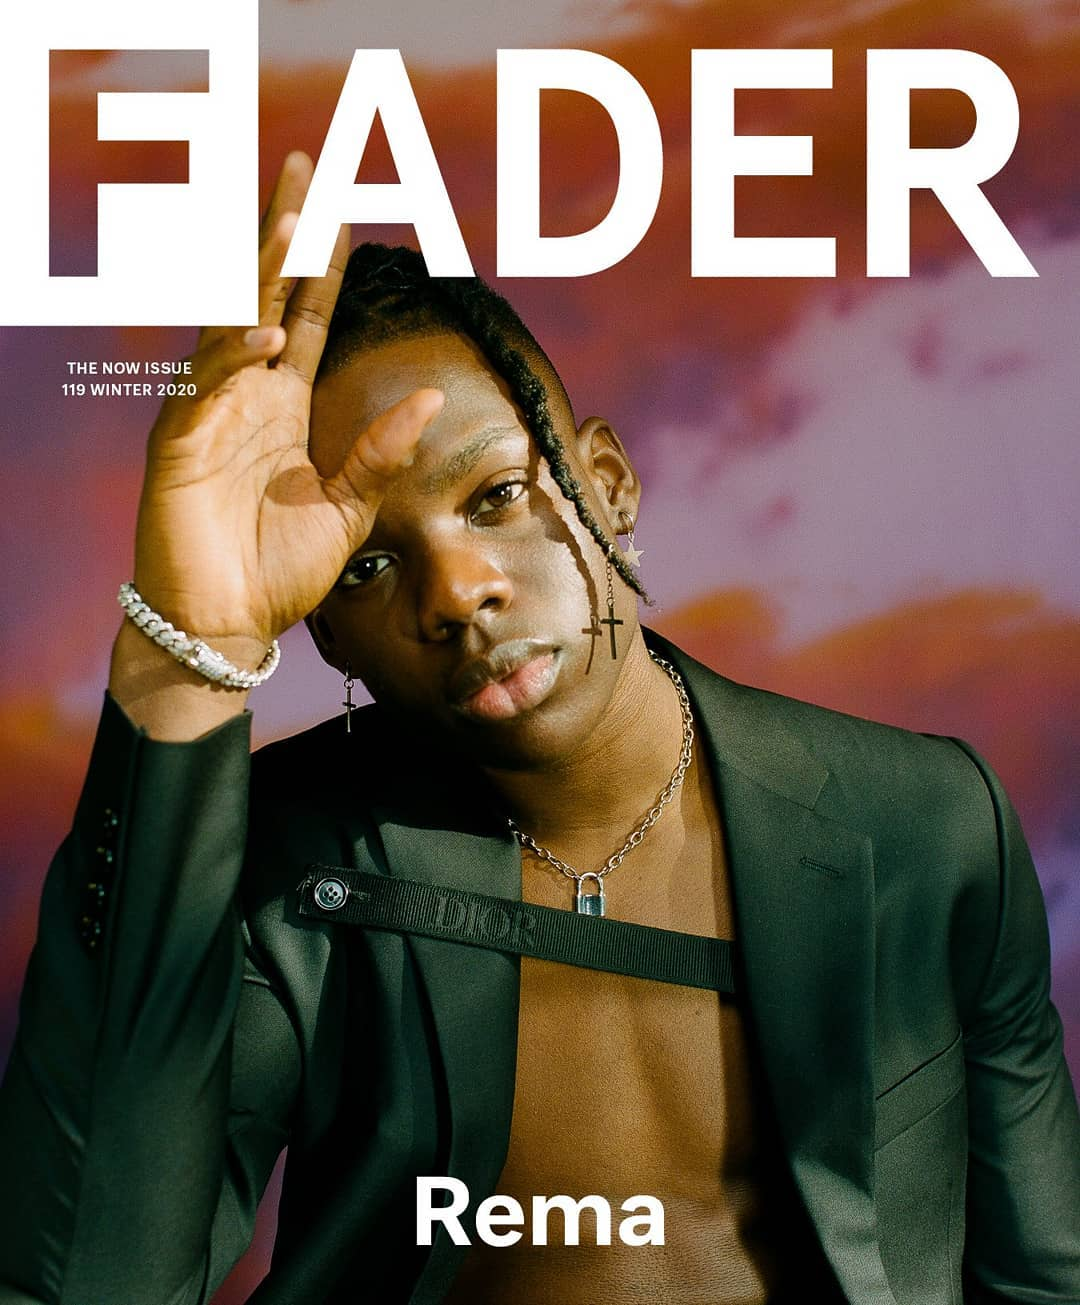 Rema Covers Fader's NOW Issue